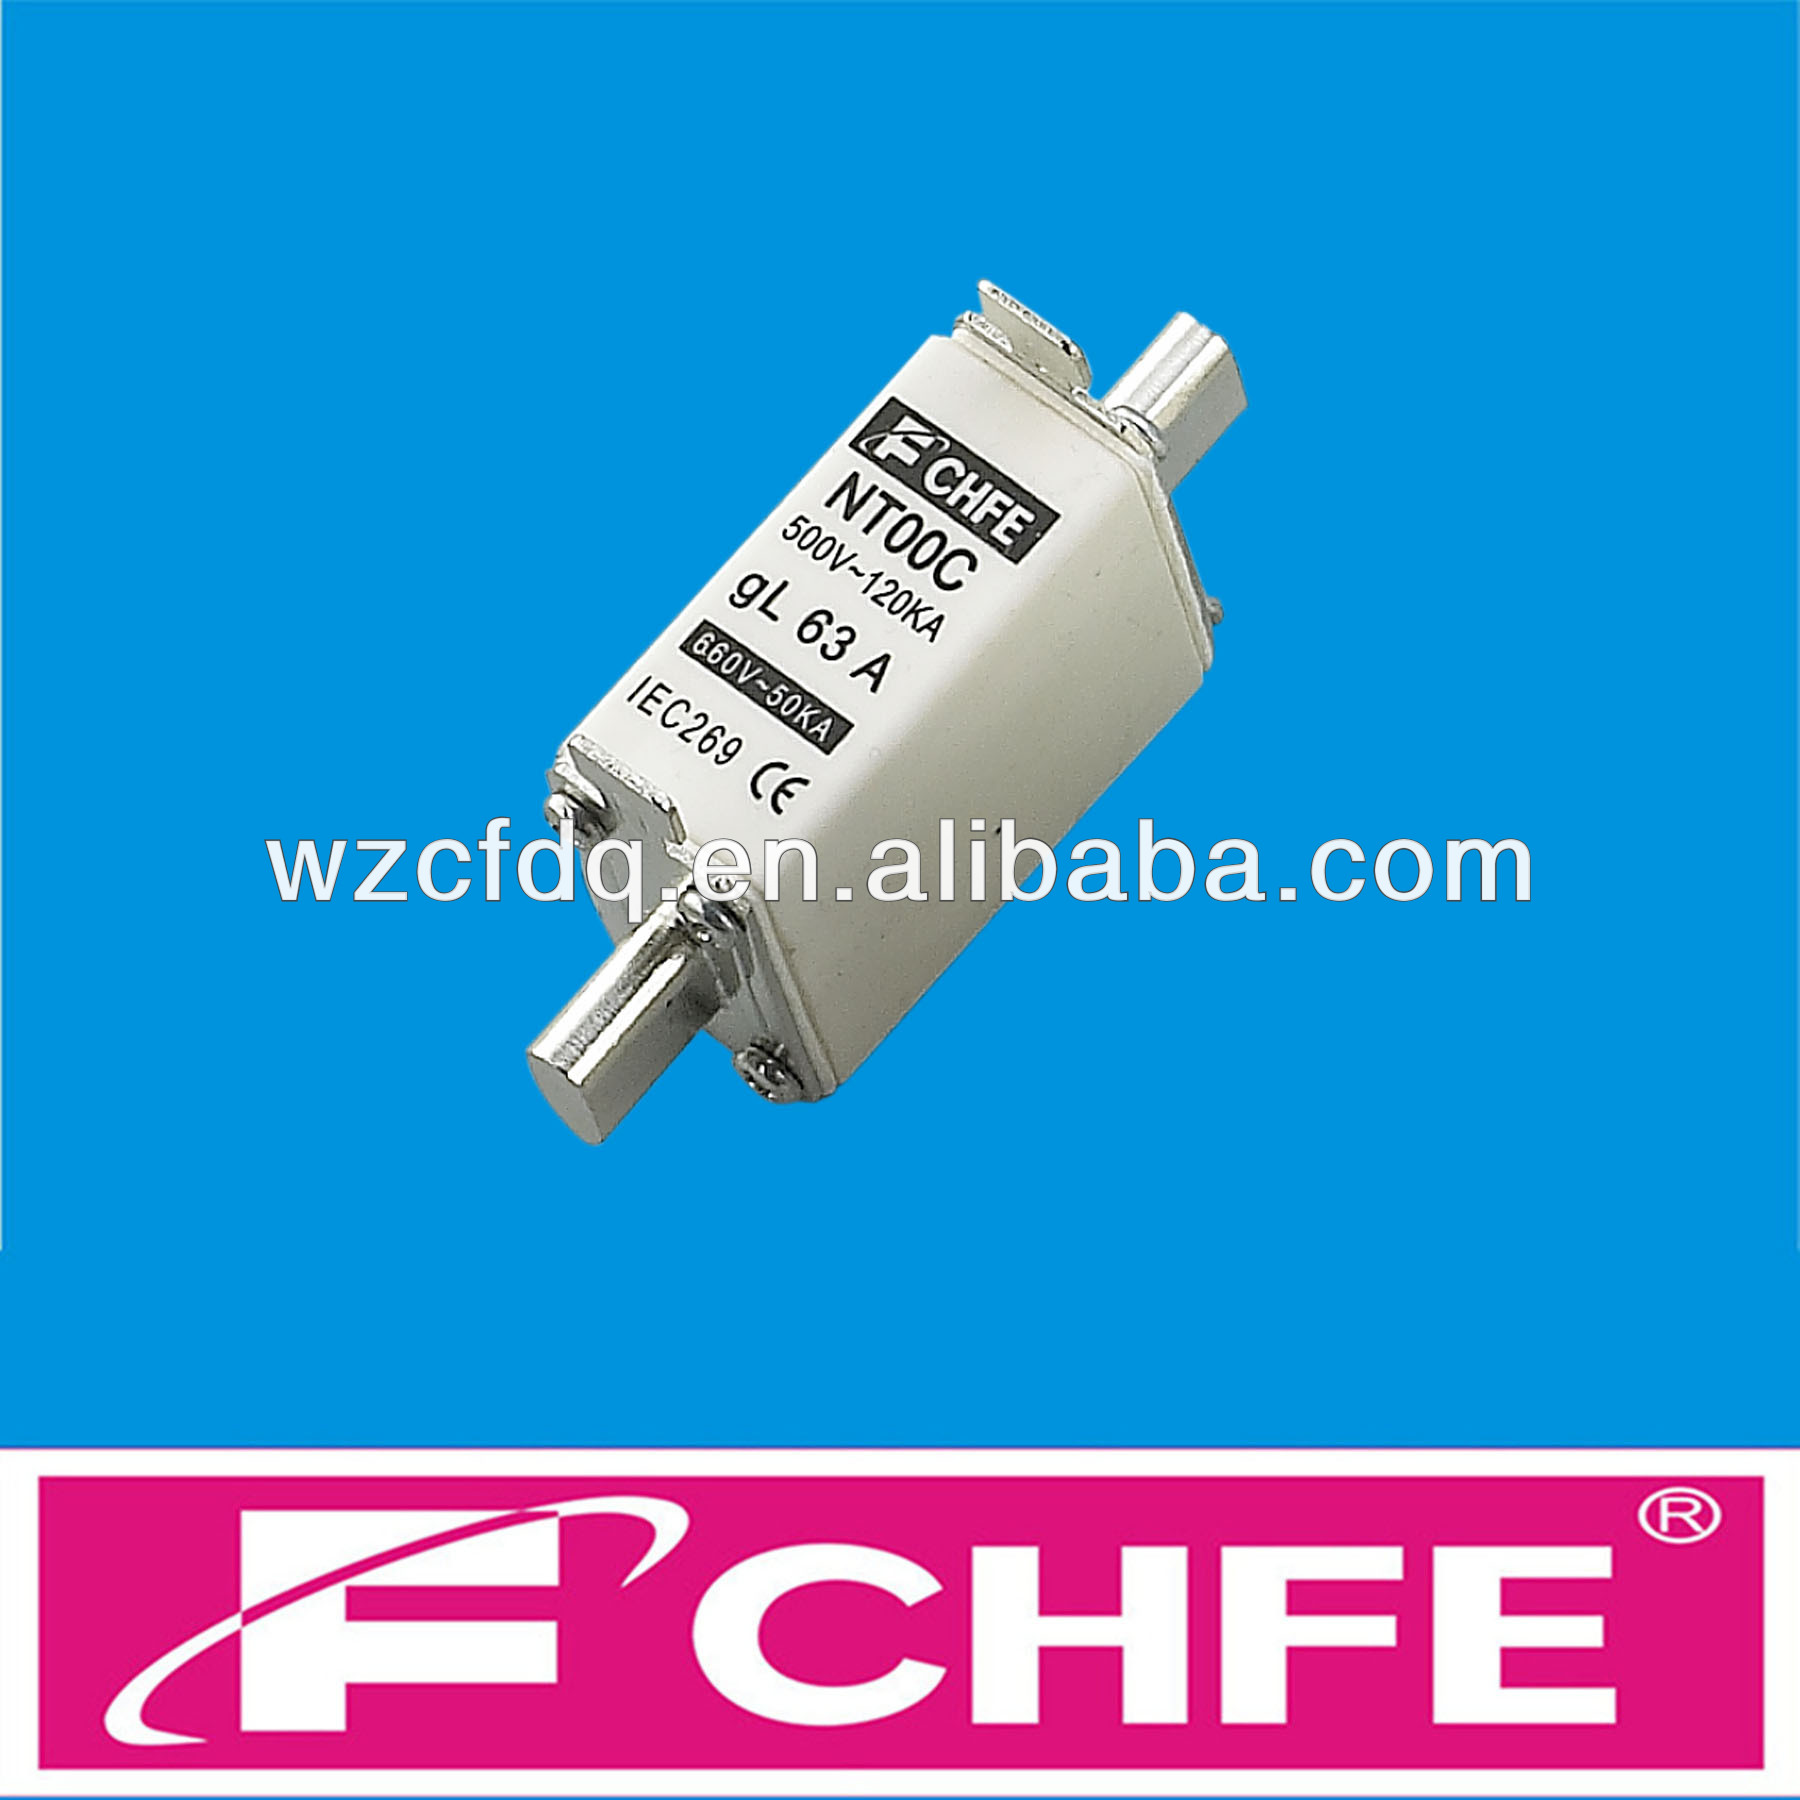 Bussmann fuse NH000 NH00 NH0 NH1 NH2 NH3 NH4 NH type hrc fuse link CHFE Brand